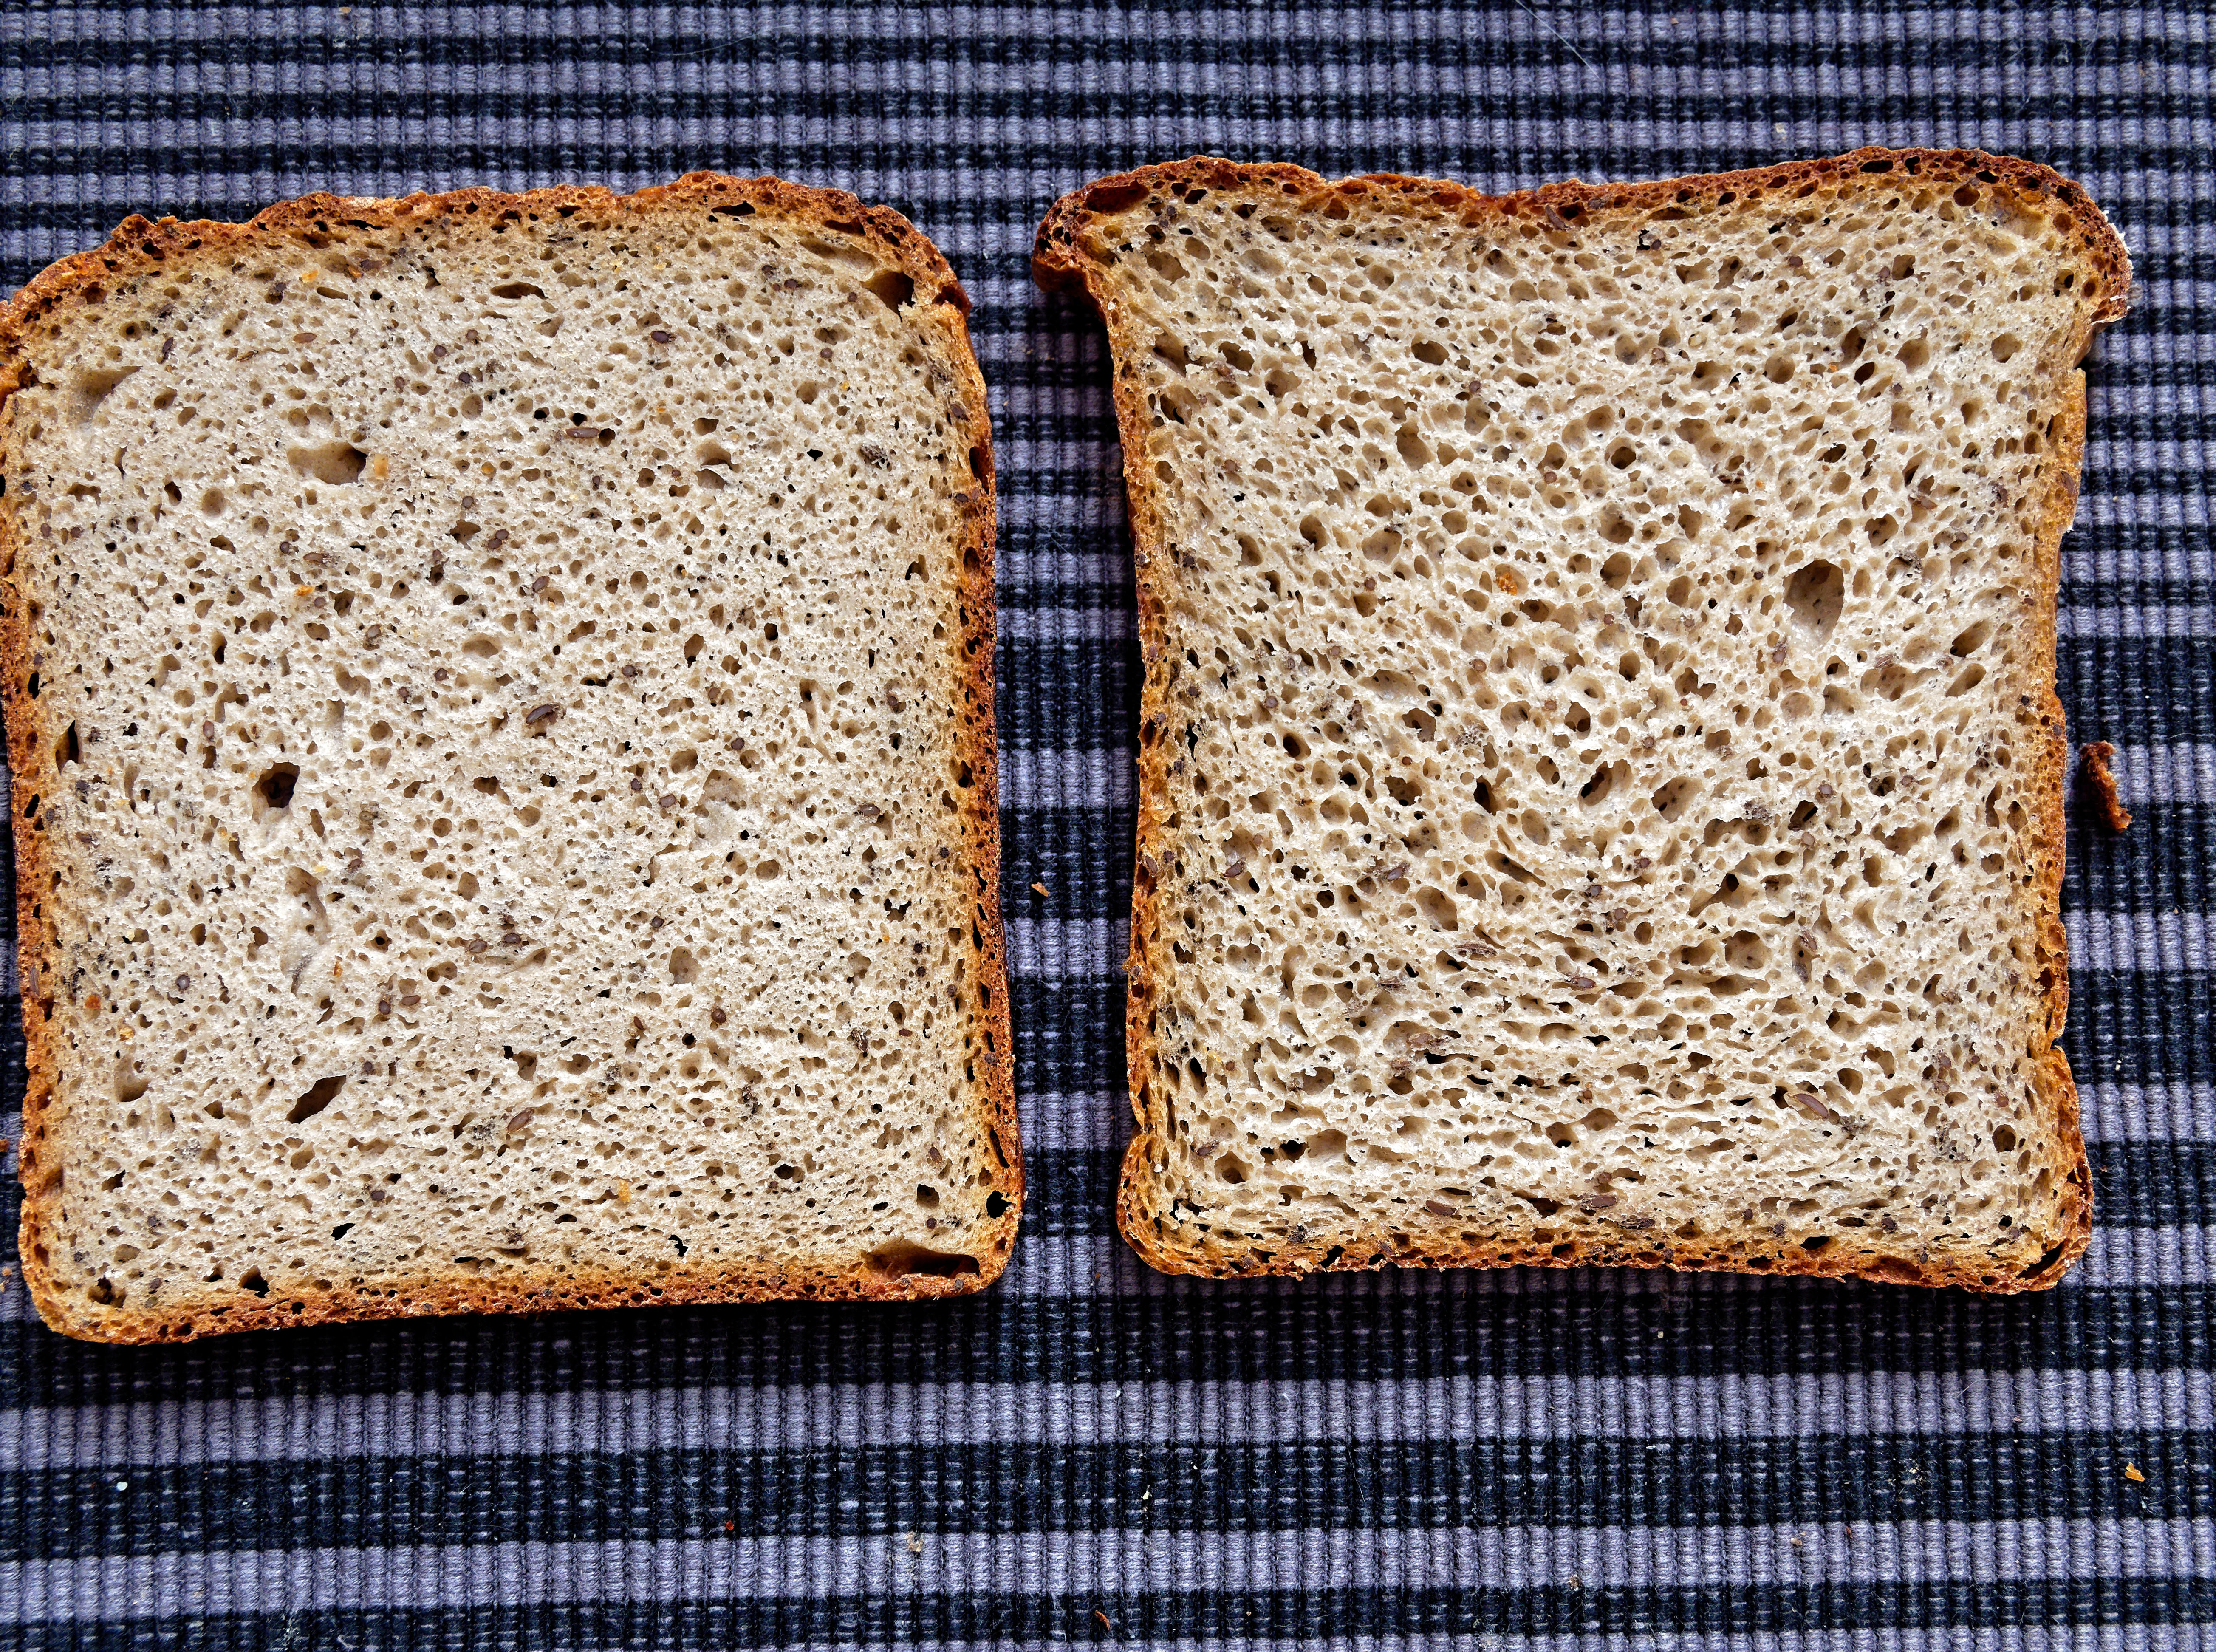 This should be Bread-4.jpeg.  Is it missing?